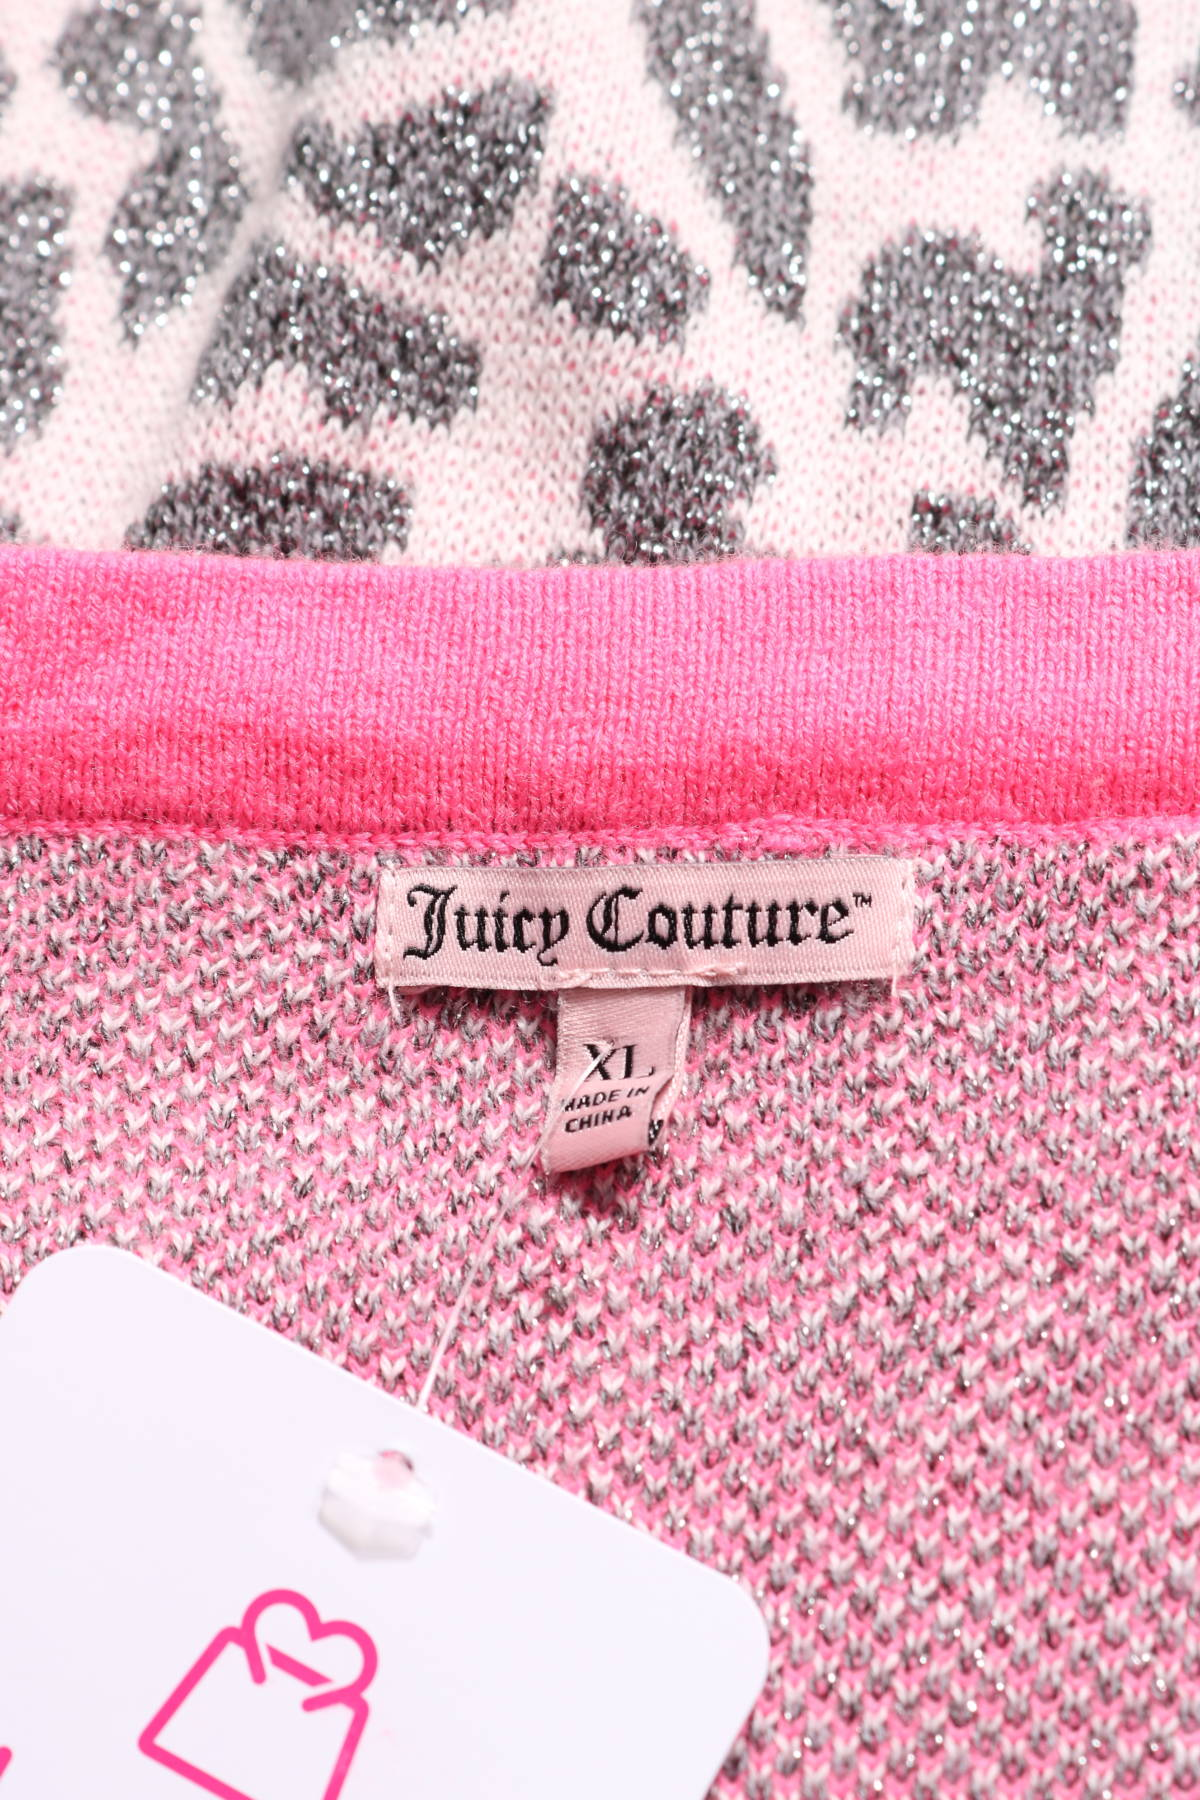 Пуловер Juicy Couture3